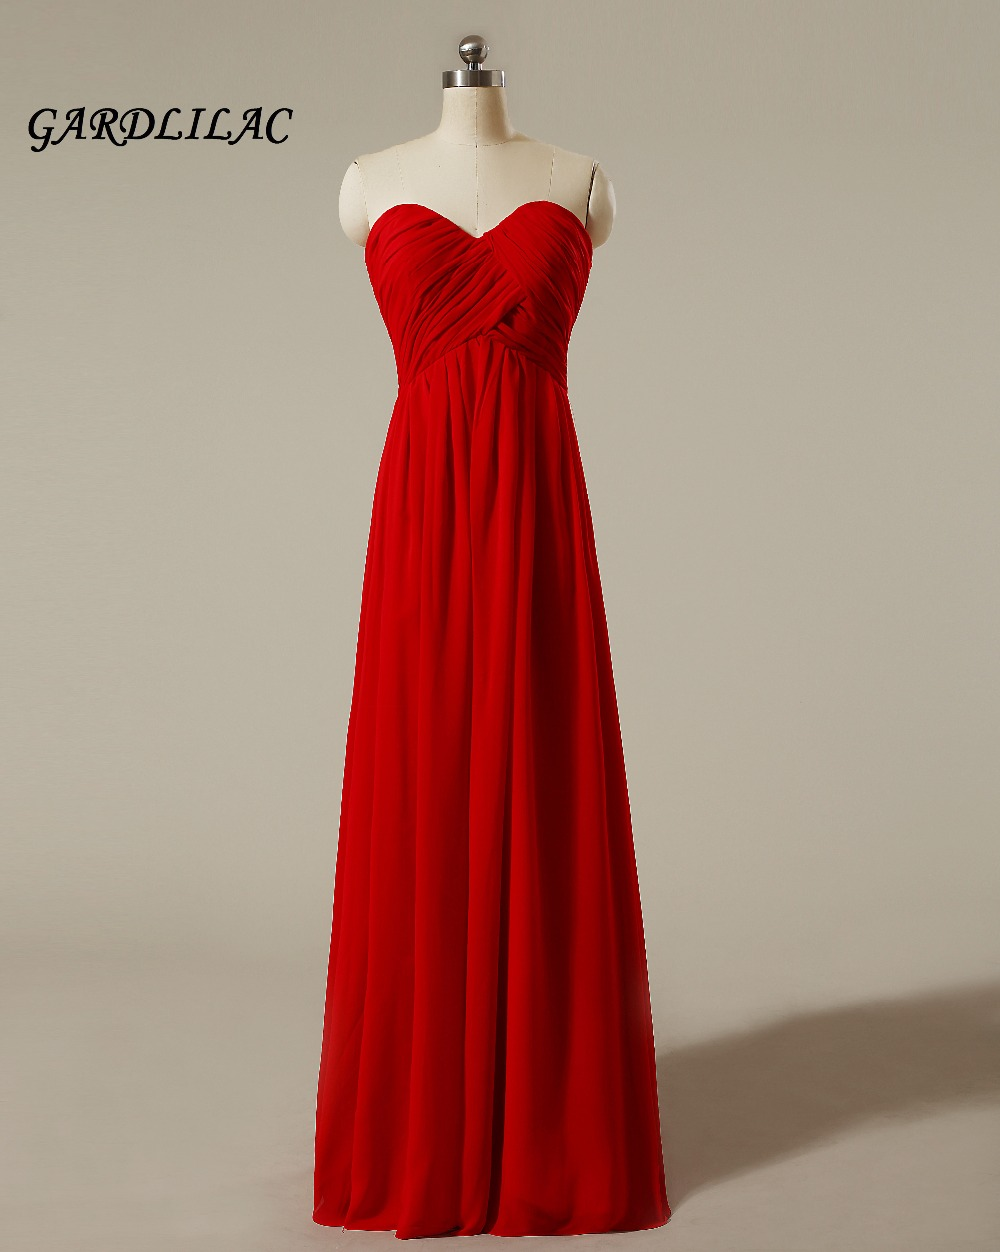 2018 New Strapless Red Chiffon   Bridesmaid     Dresses   Plus Size Wedding Party Gown Maid of Honor Long Prom   Dress